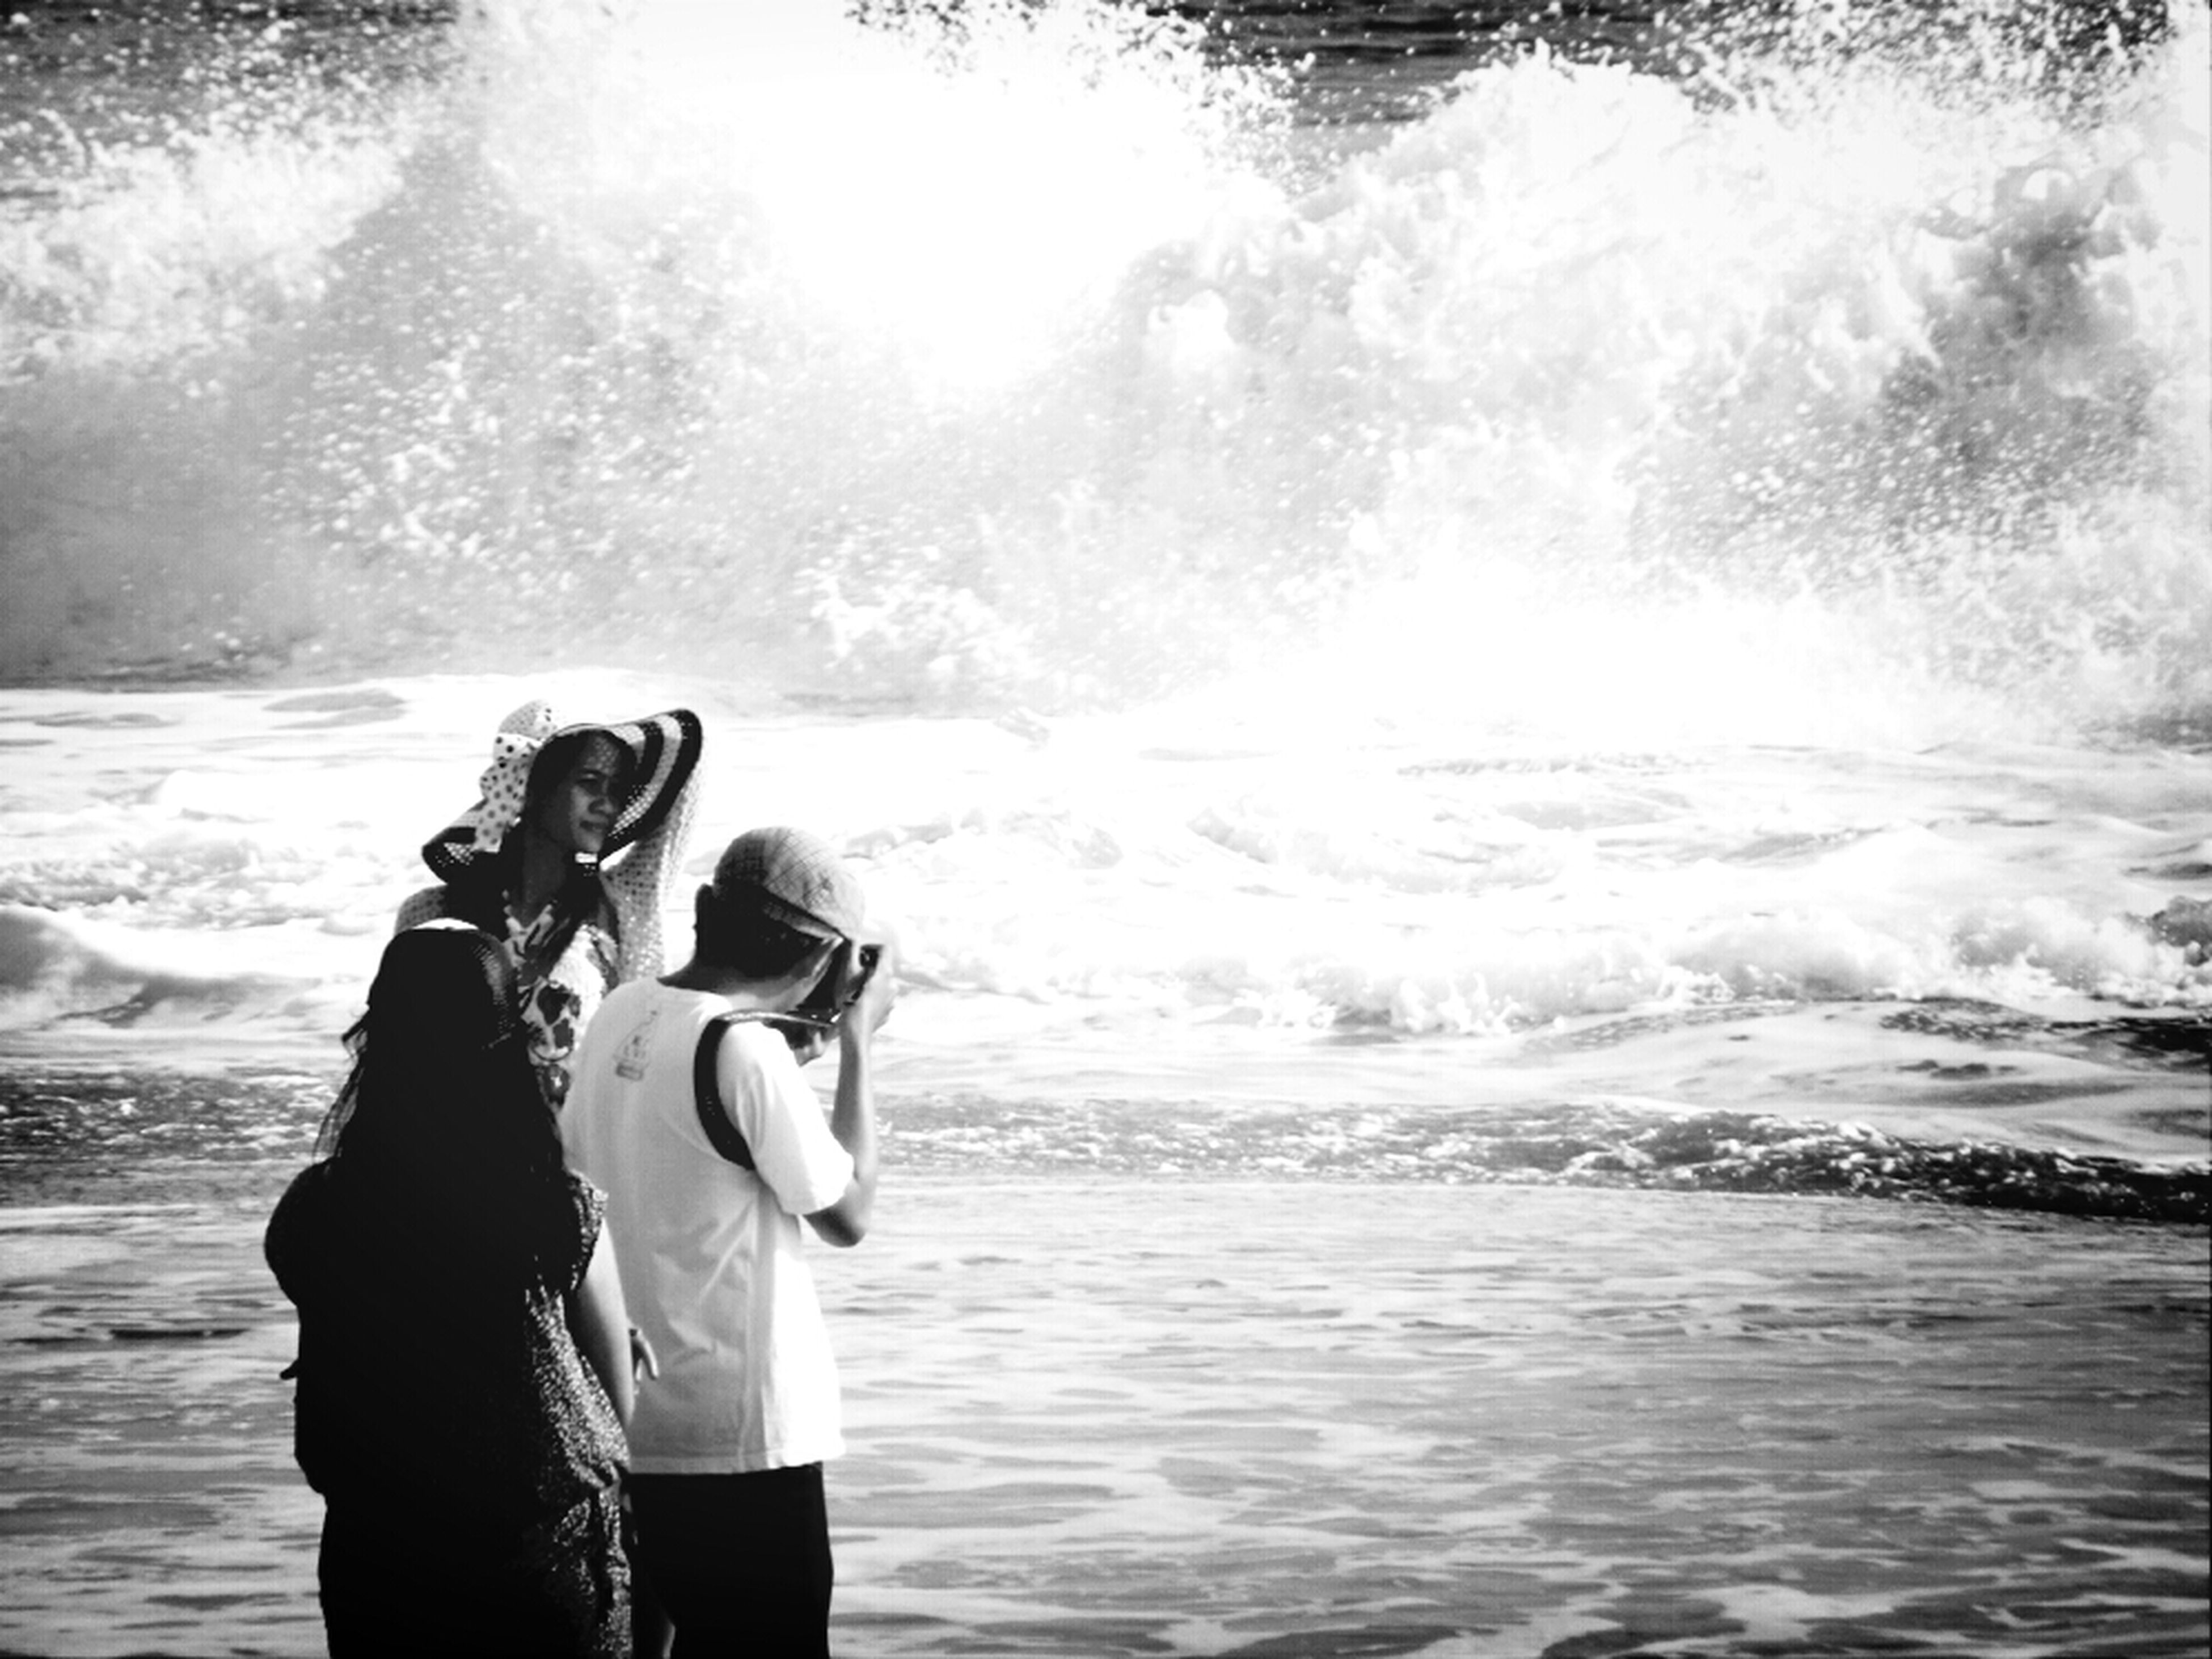 water, sea, lifestyles, leisure activity, rear view, beach, vacations, men, wave, standing, three quarter length, casual clothing, shore, togetherness, nature, boys, full length